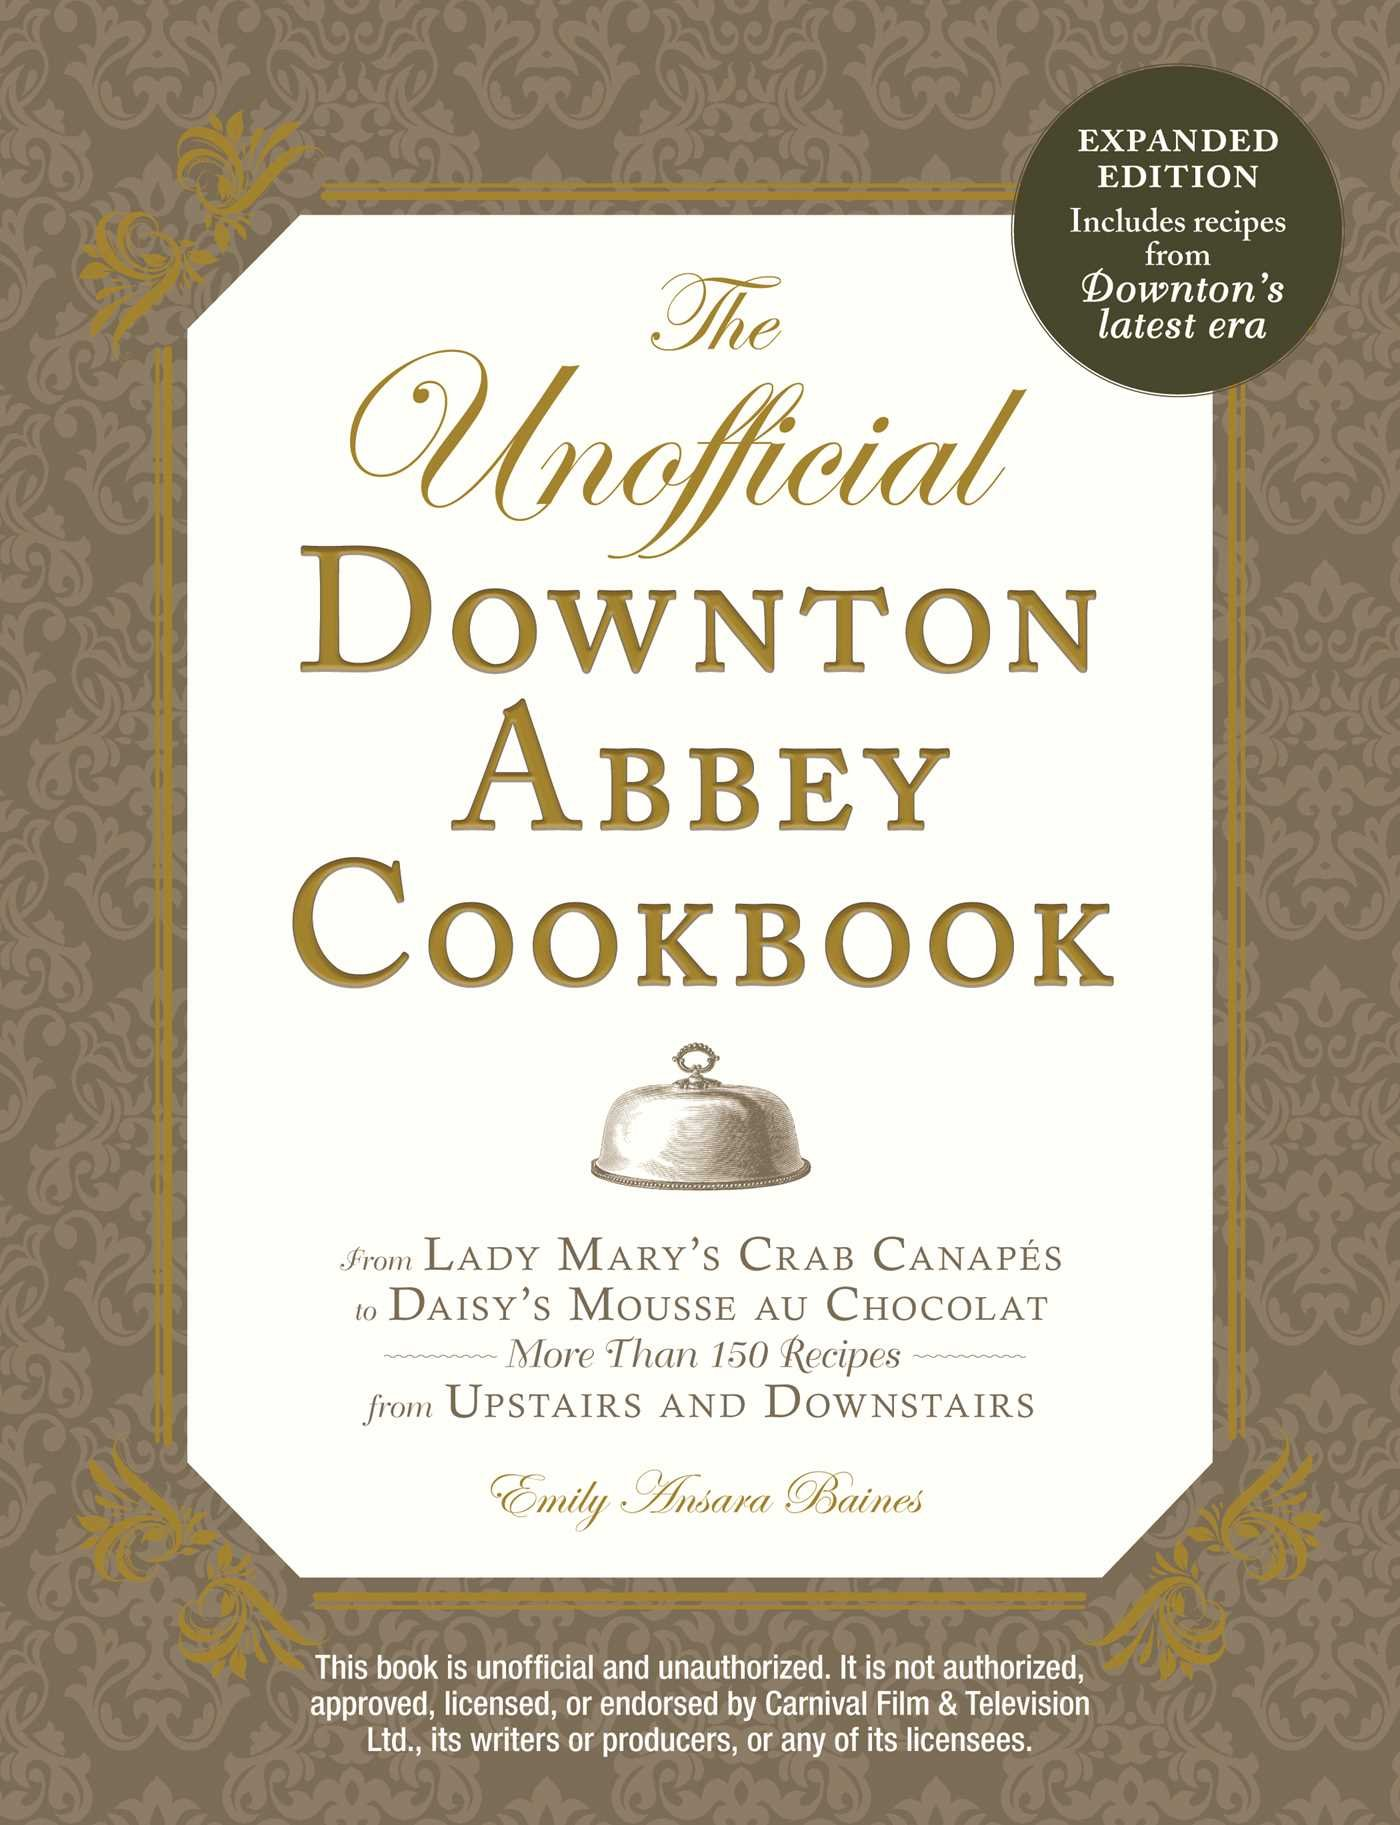 The unofficial downton abbey cookbook revised edition from lady the unofficial downton abbey cookbook revised edition from lady marys crab canapes to daisys mousse au chocolat more than 150 recipes from upstairs and monicamarmolfo Image collections